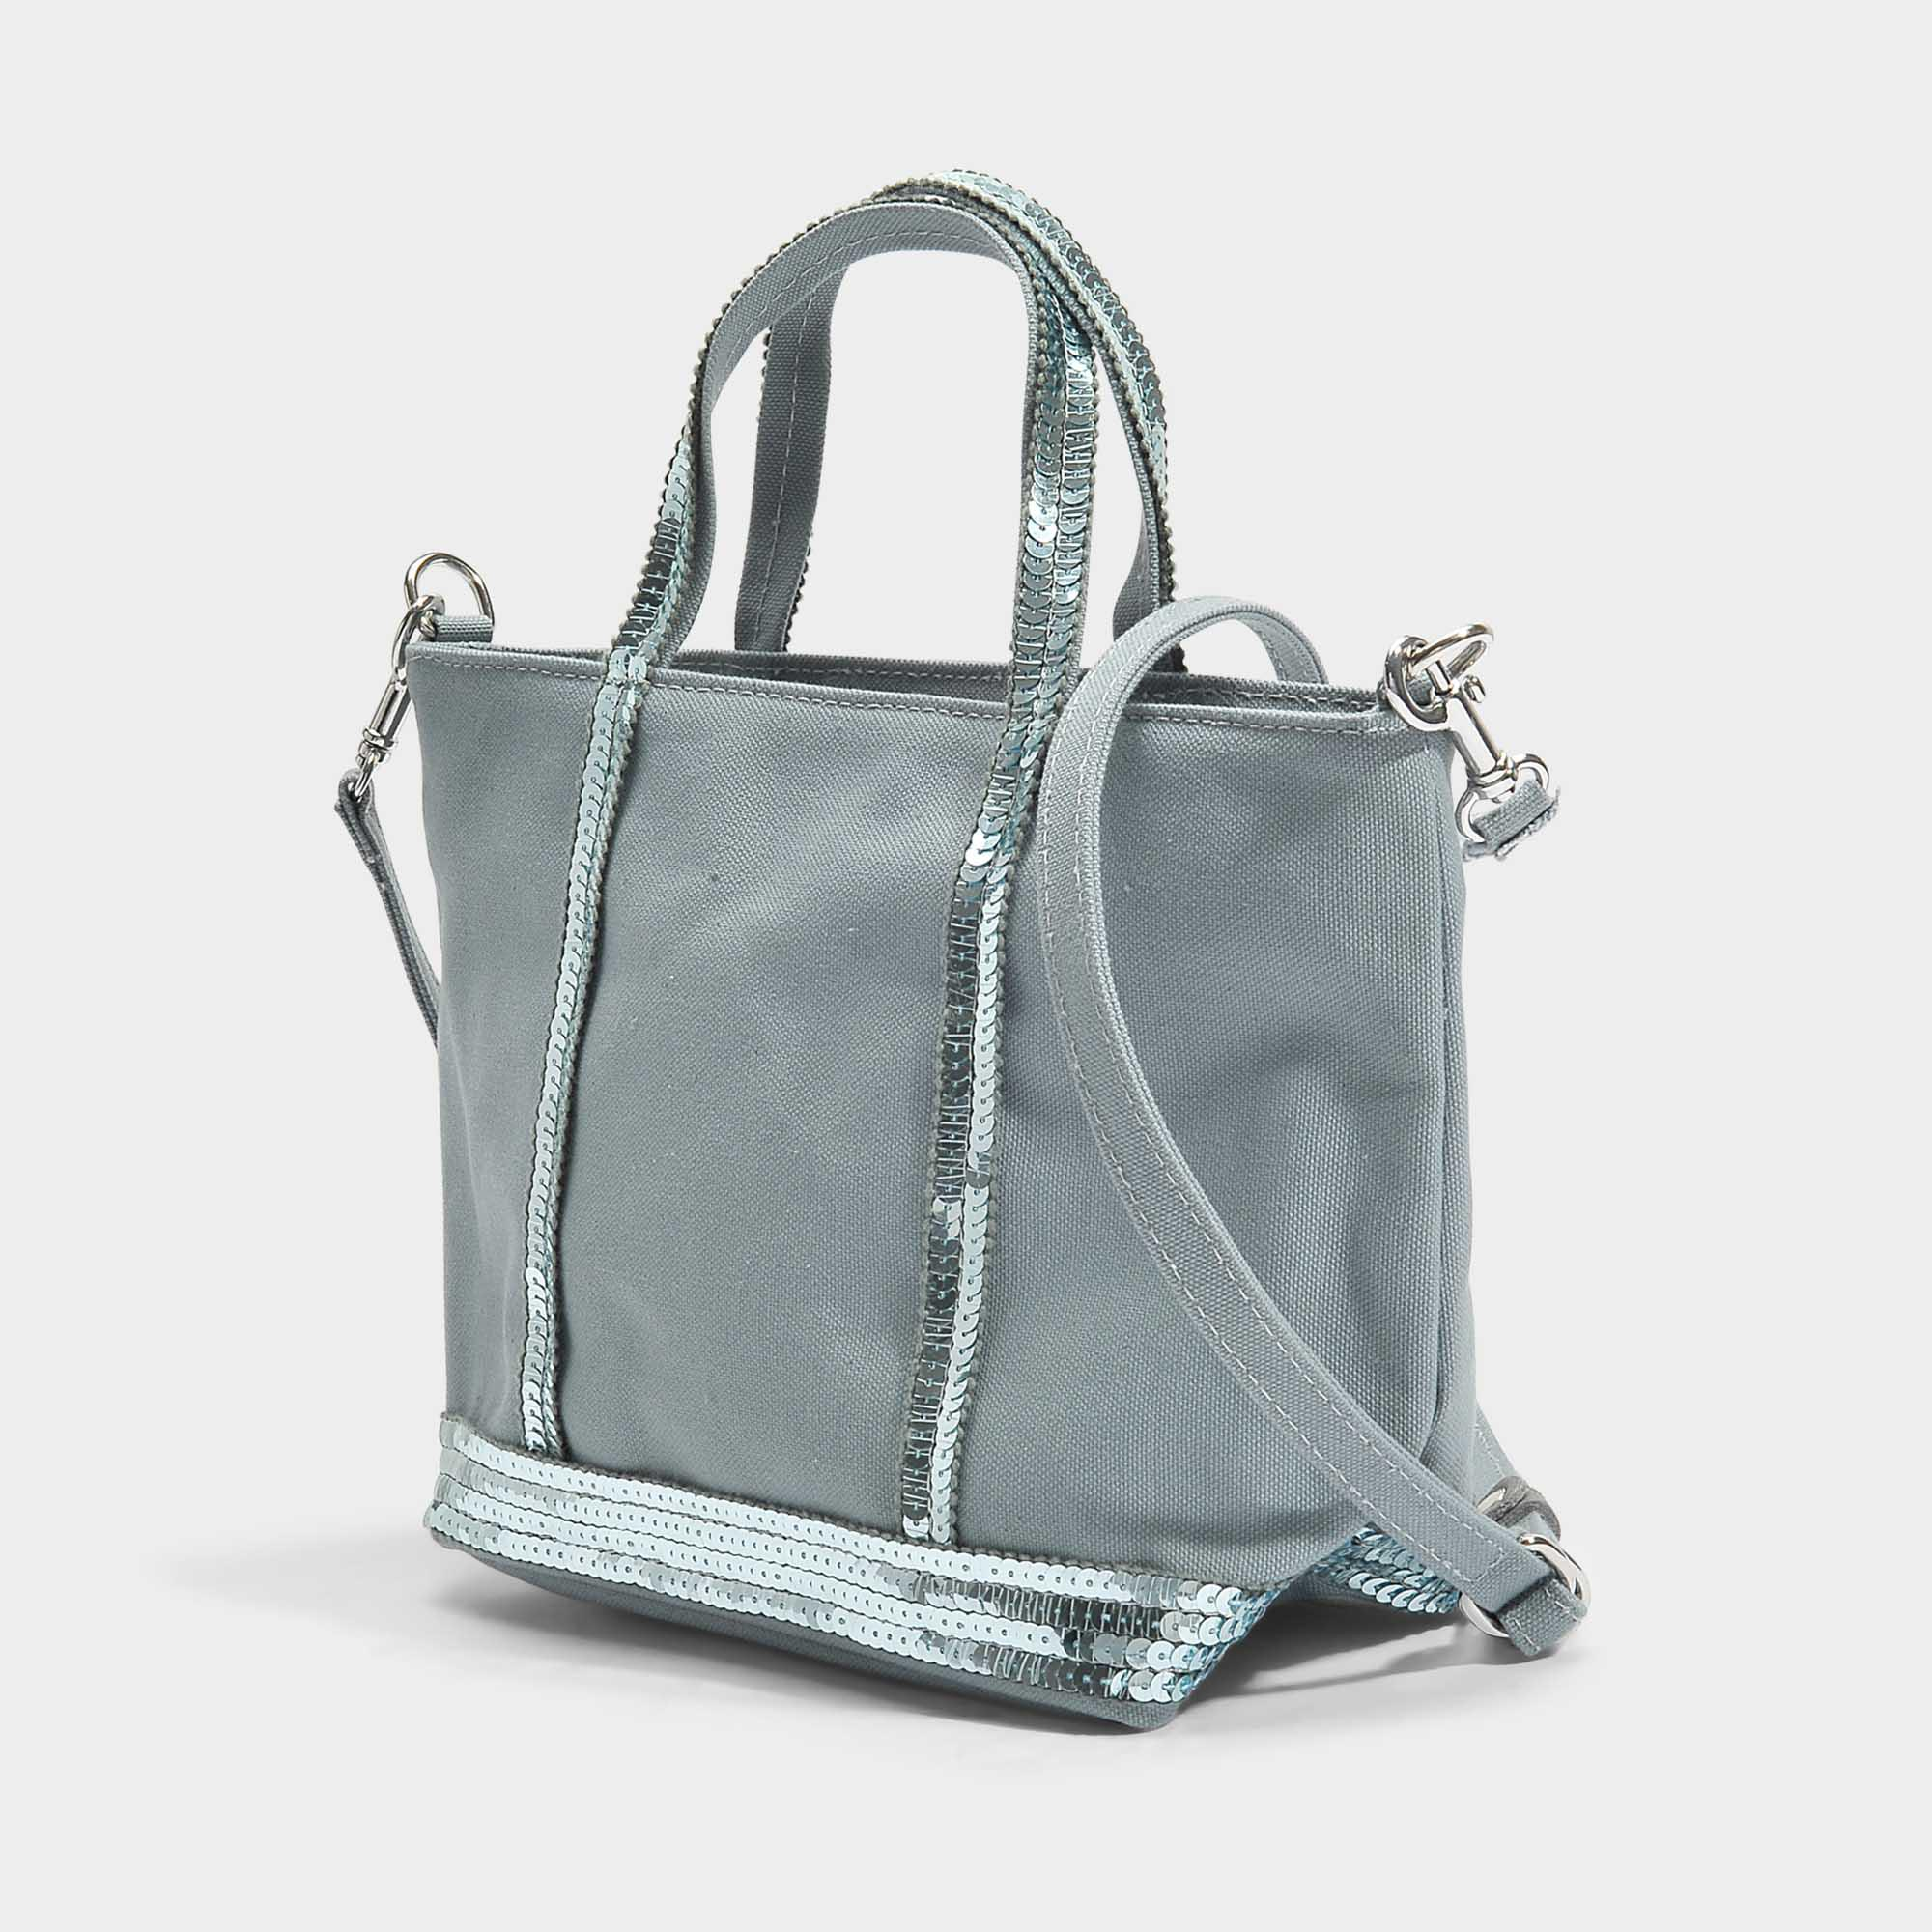 709cf50388d951 Vanessa Bruno Canvas And Sequins Baby Tote Bag In Nuage Cotton in ...